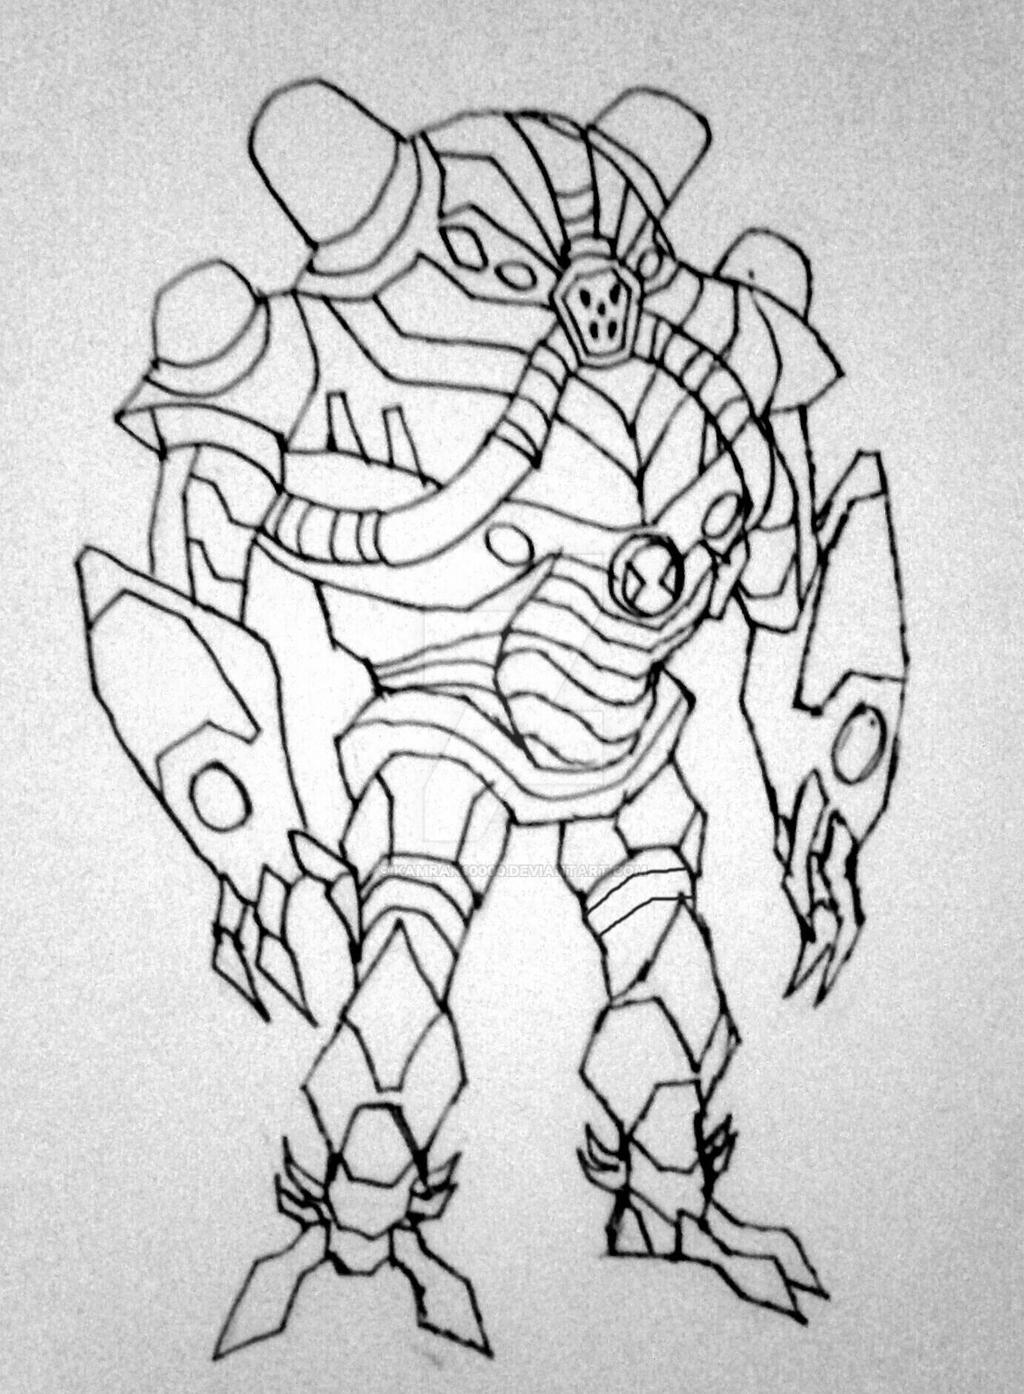 overflow in genrex style sketch by kamran10000 on deviantart